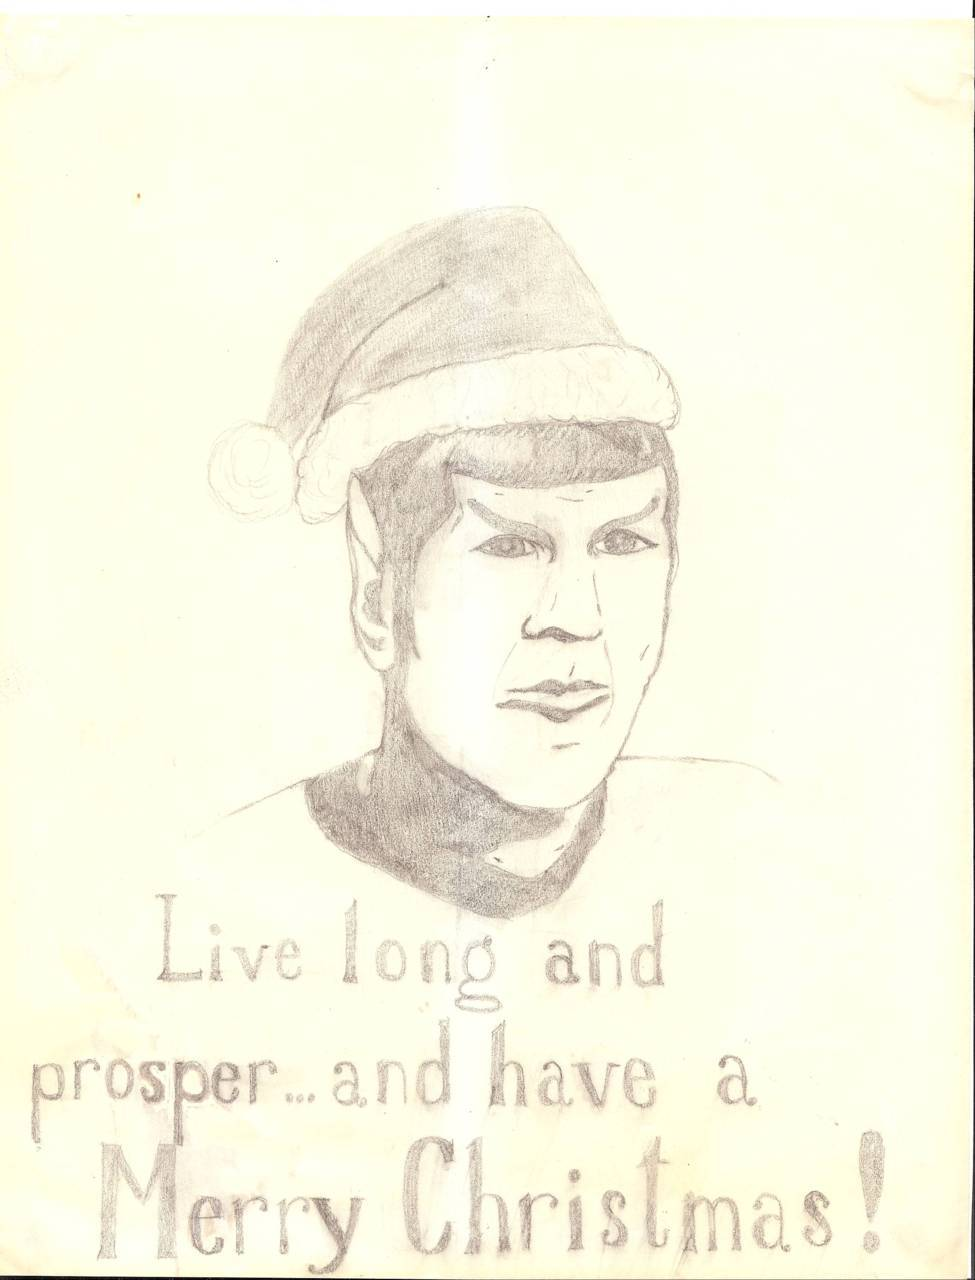 Star Trek fanart - Spock in a Santa hat. Pencil on typing paper.  I drew this in December 1981, to put on my dorm room door. I tried to make the scan darker, but this is the best I could manage. Drawn while looking at a drawing of Spock in a fan magazine.